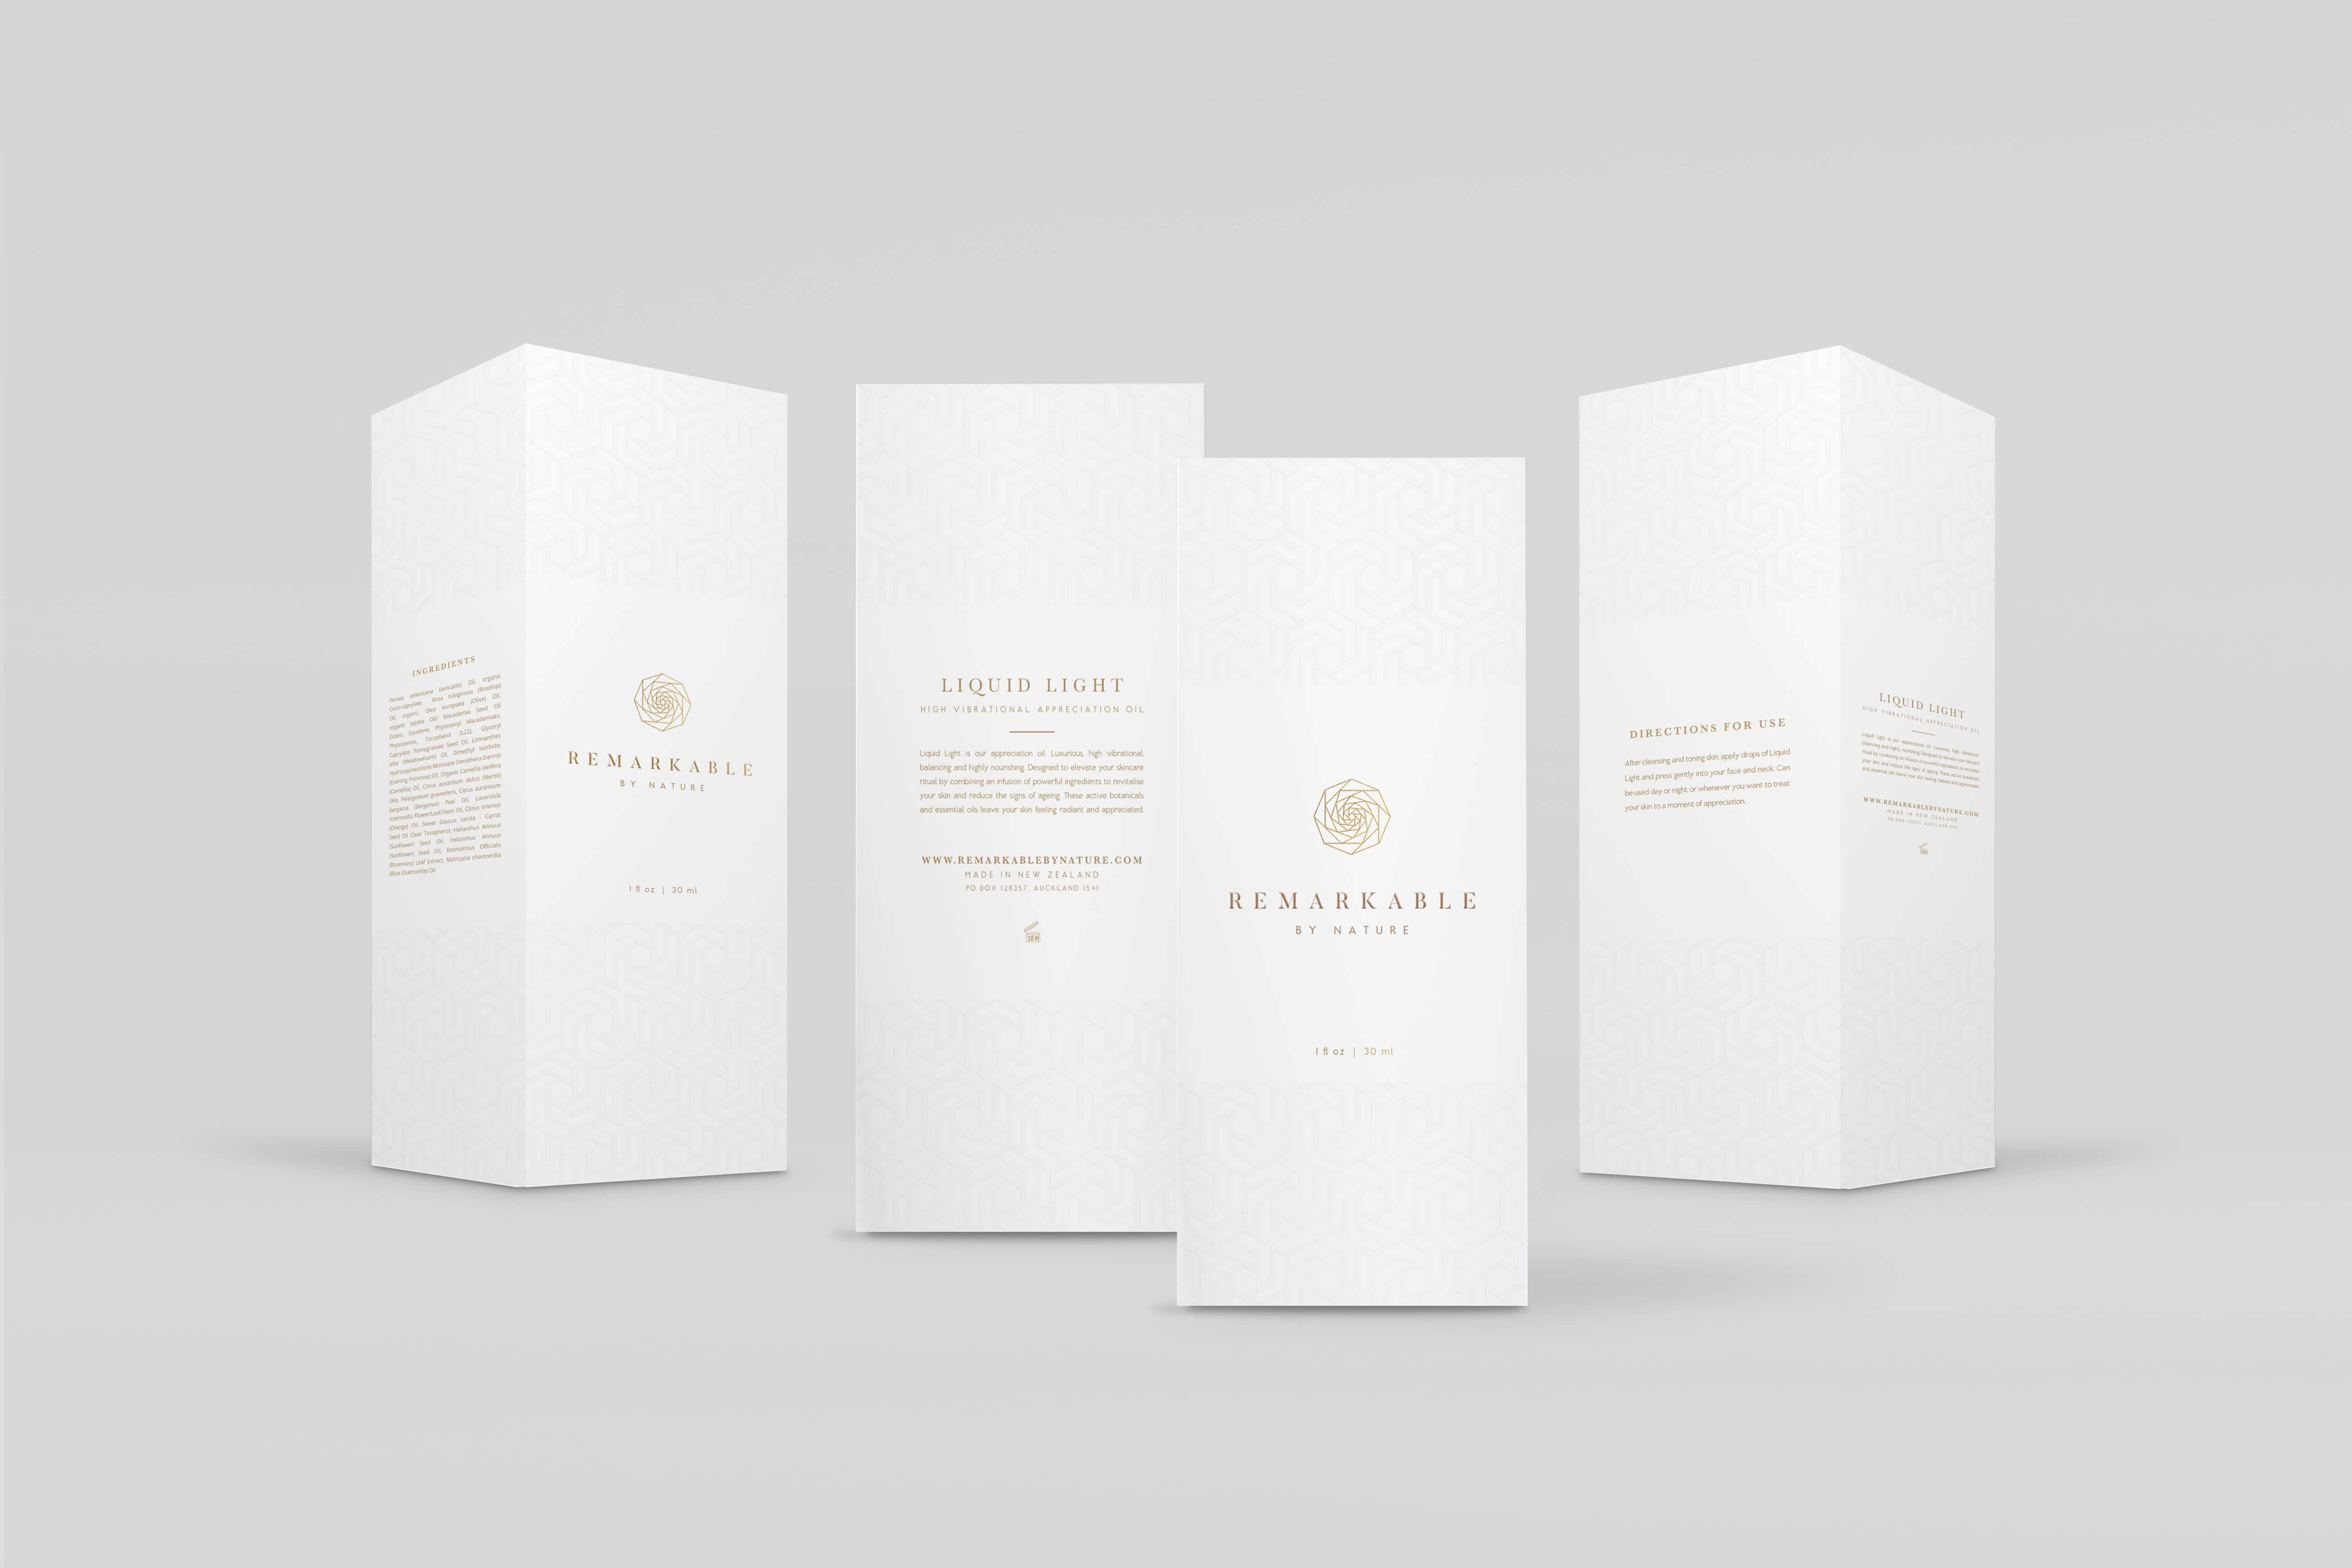 theta-dalist_remarkable_packaging